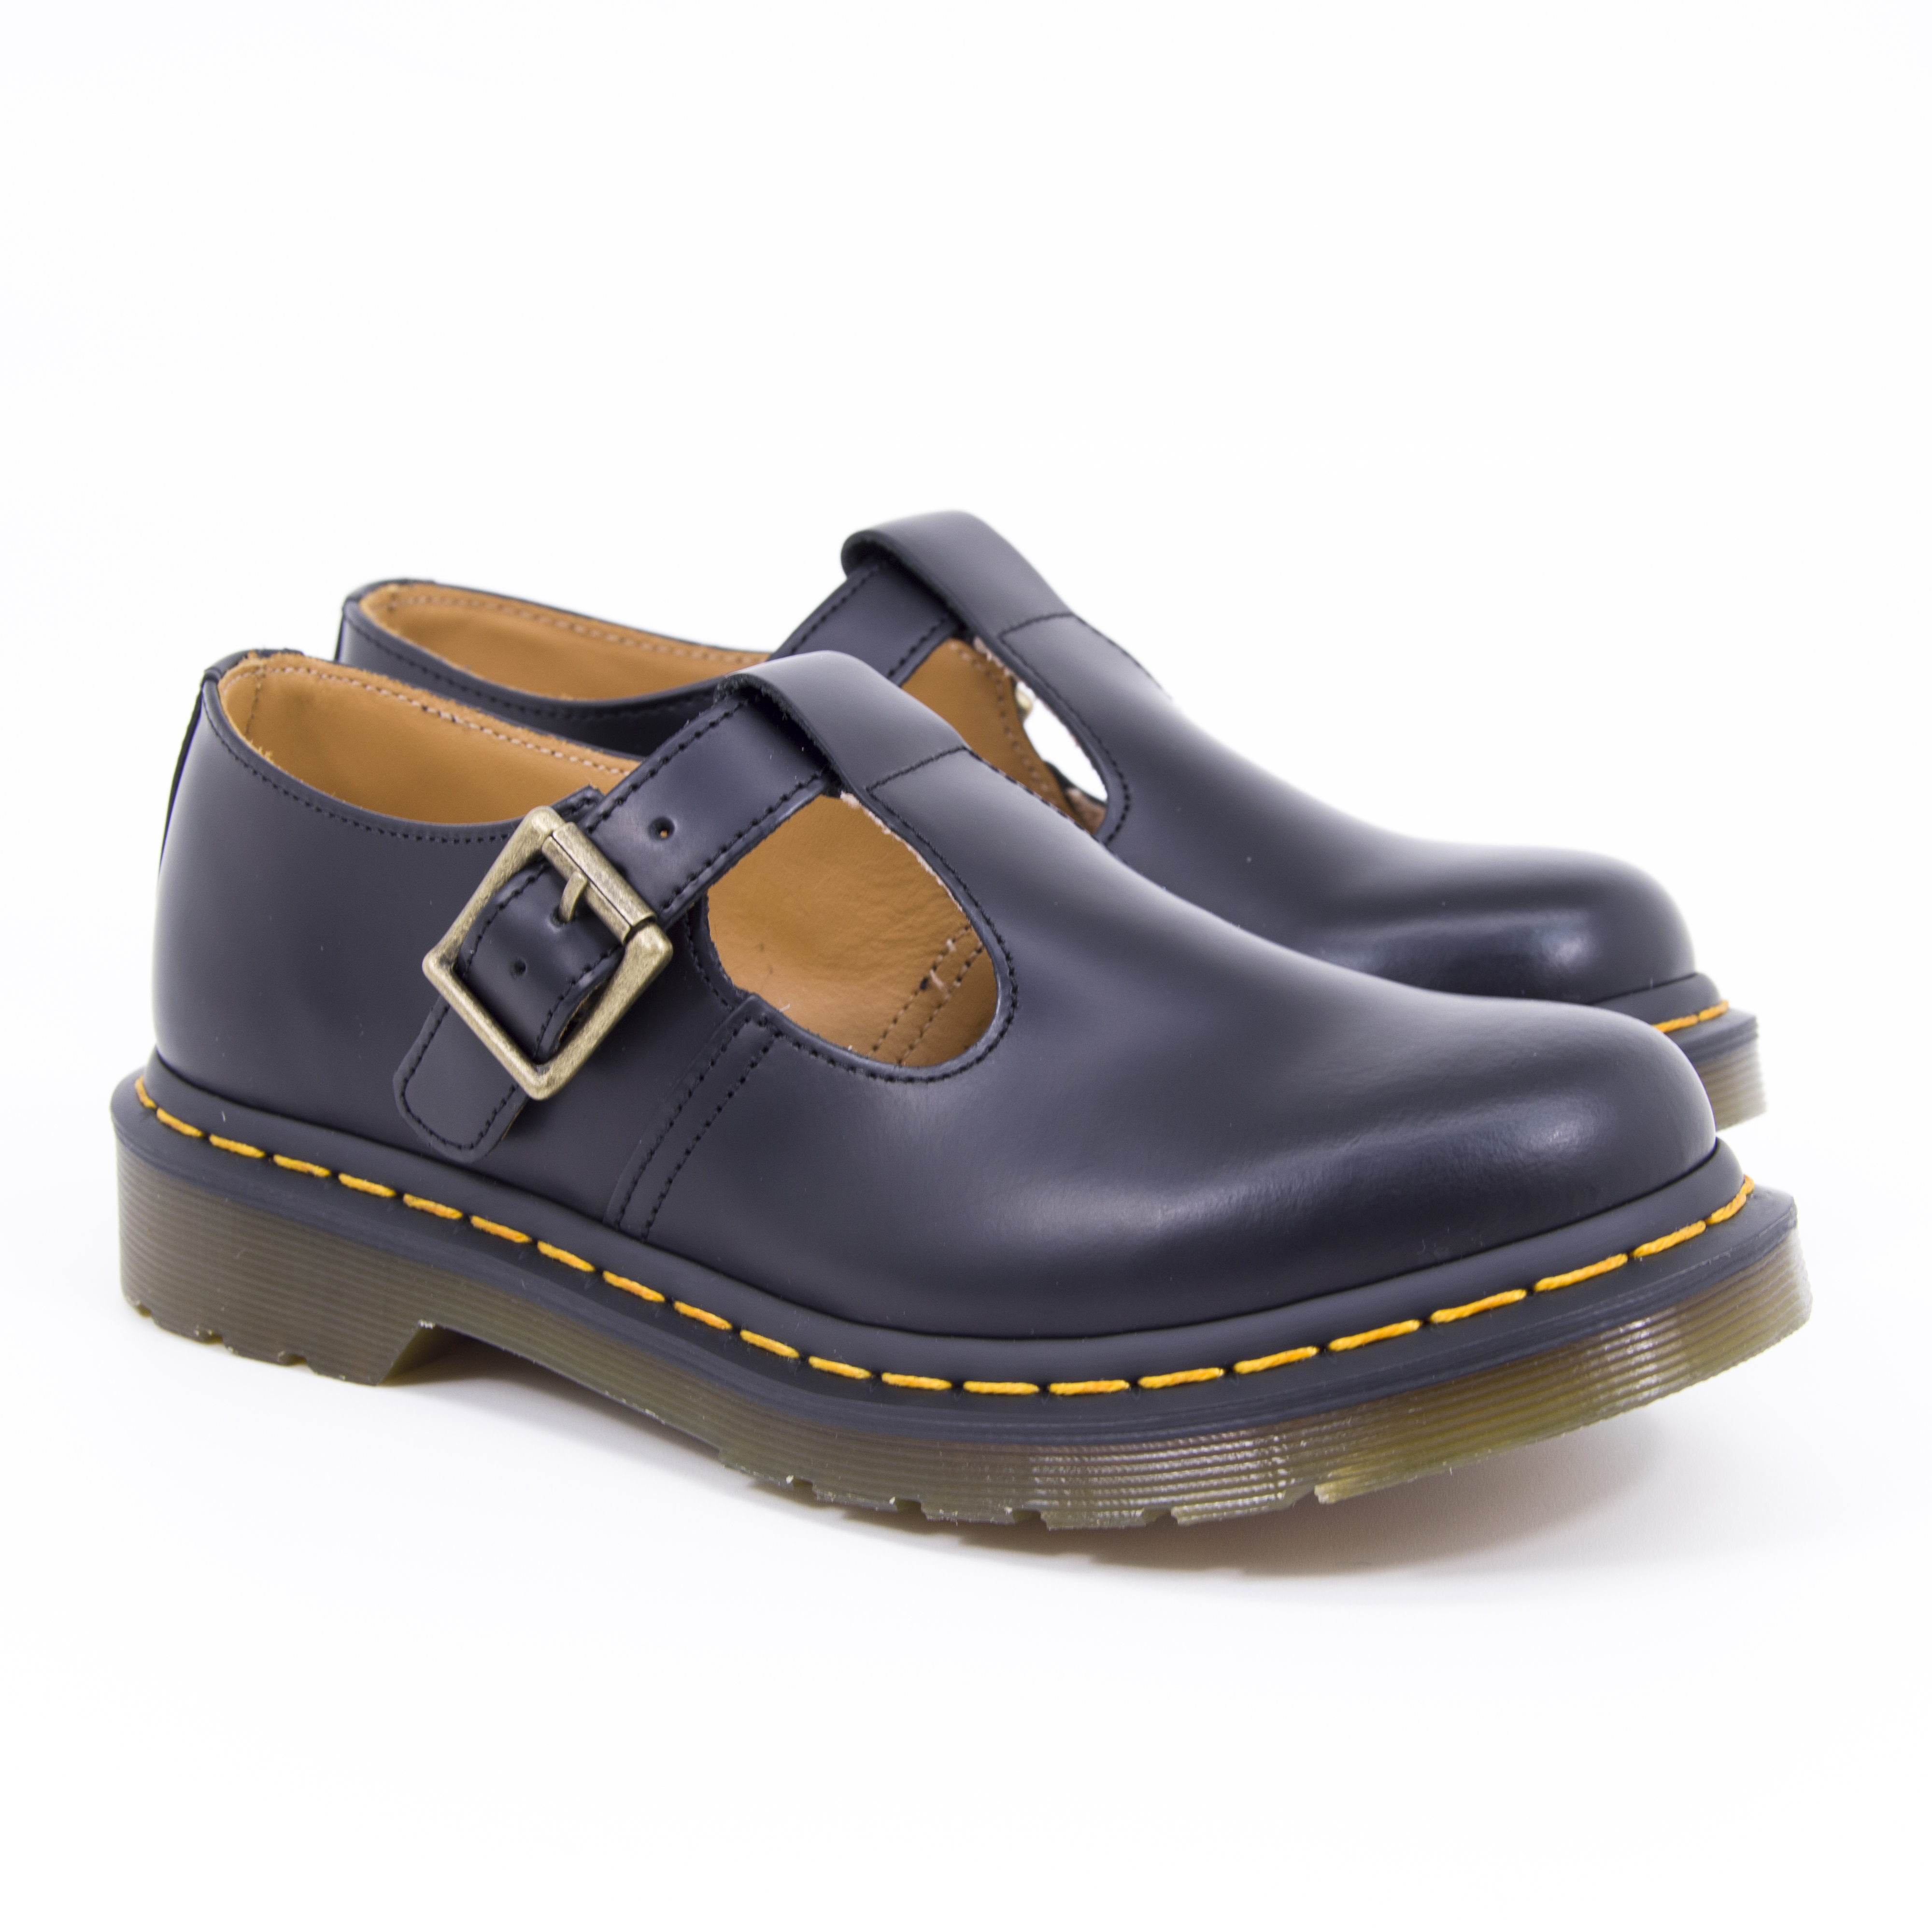 Dr.Martens - POLLEY - Black Smooth